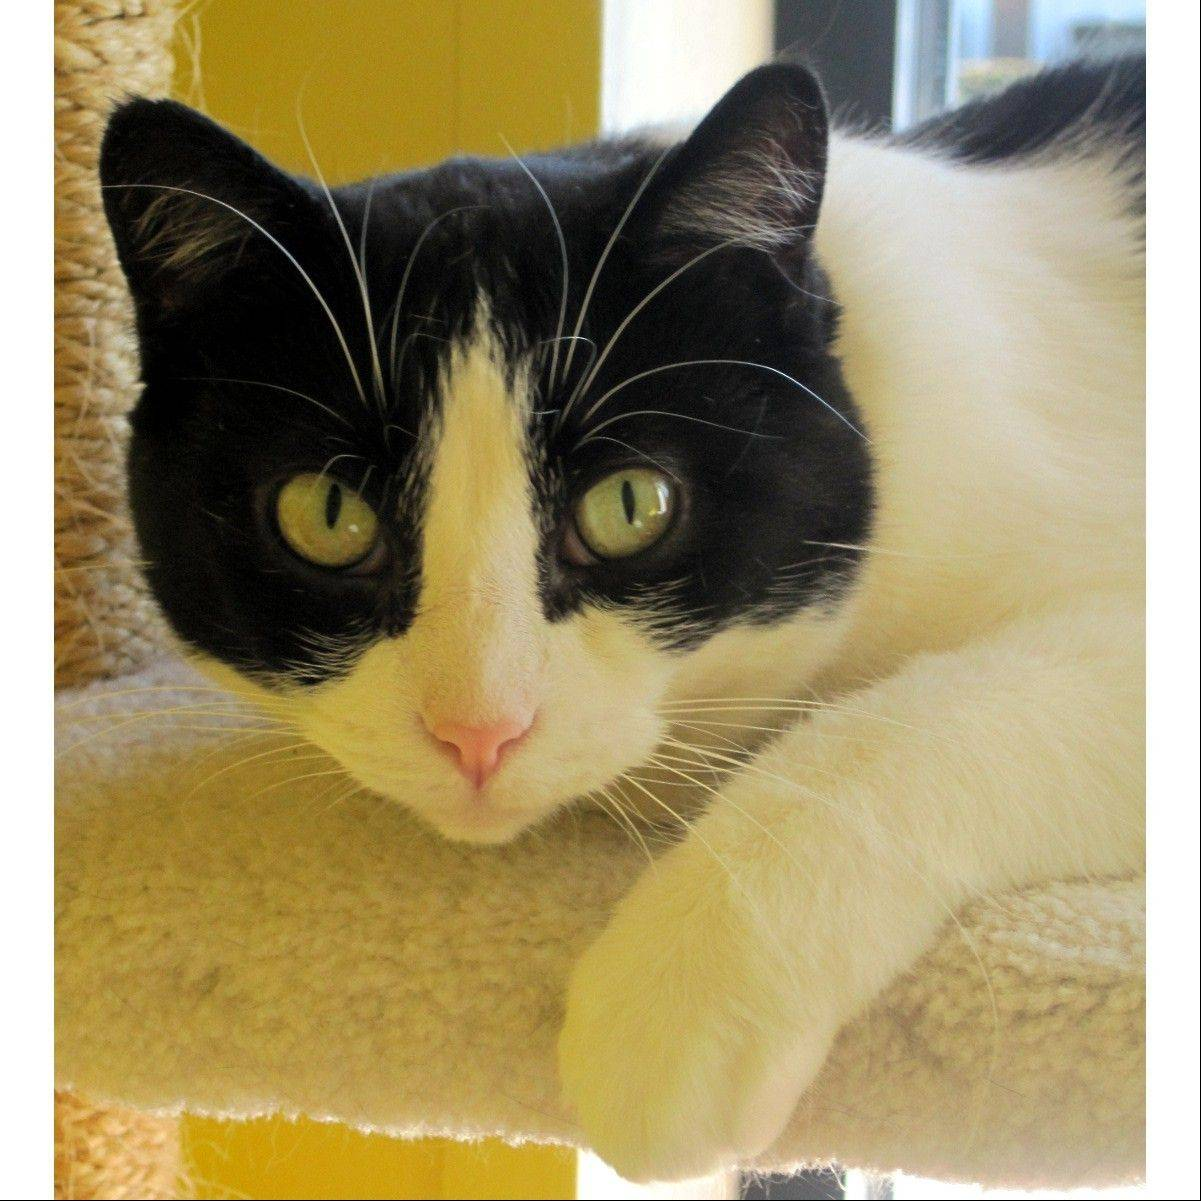 Baby is a gorgeous black and white tuxedo cat with yellow-green eyes and beautiful white whiskers and eyebrows. She is shy at first, but warms up and will be very sweet once she gets to know you. Baby is best friends with Bambi. .